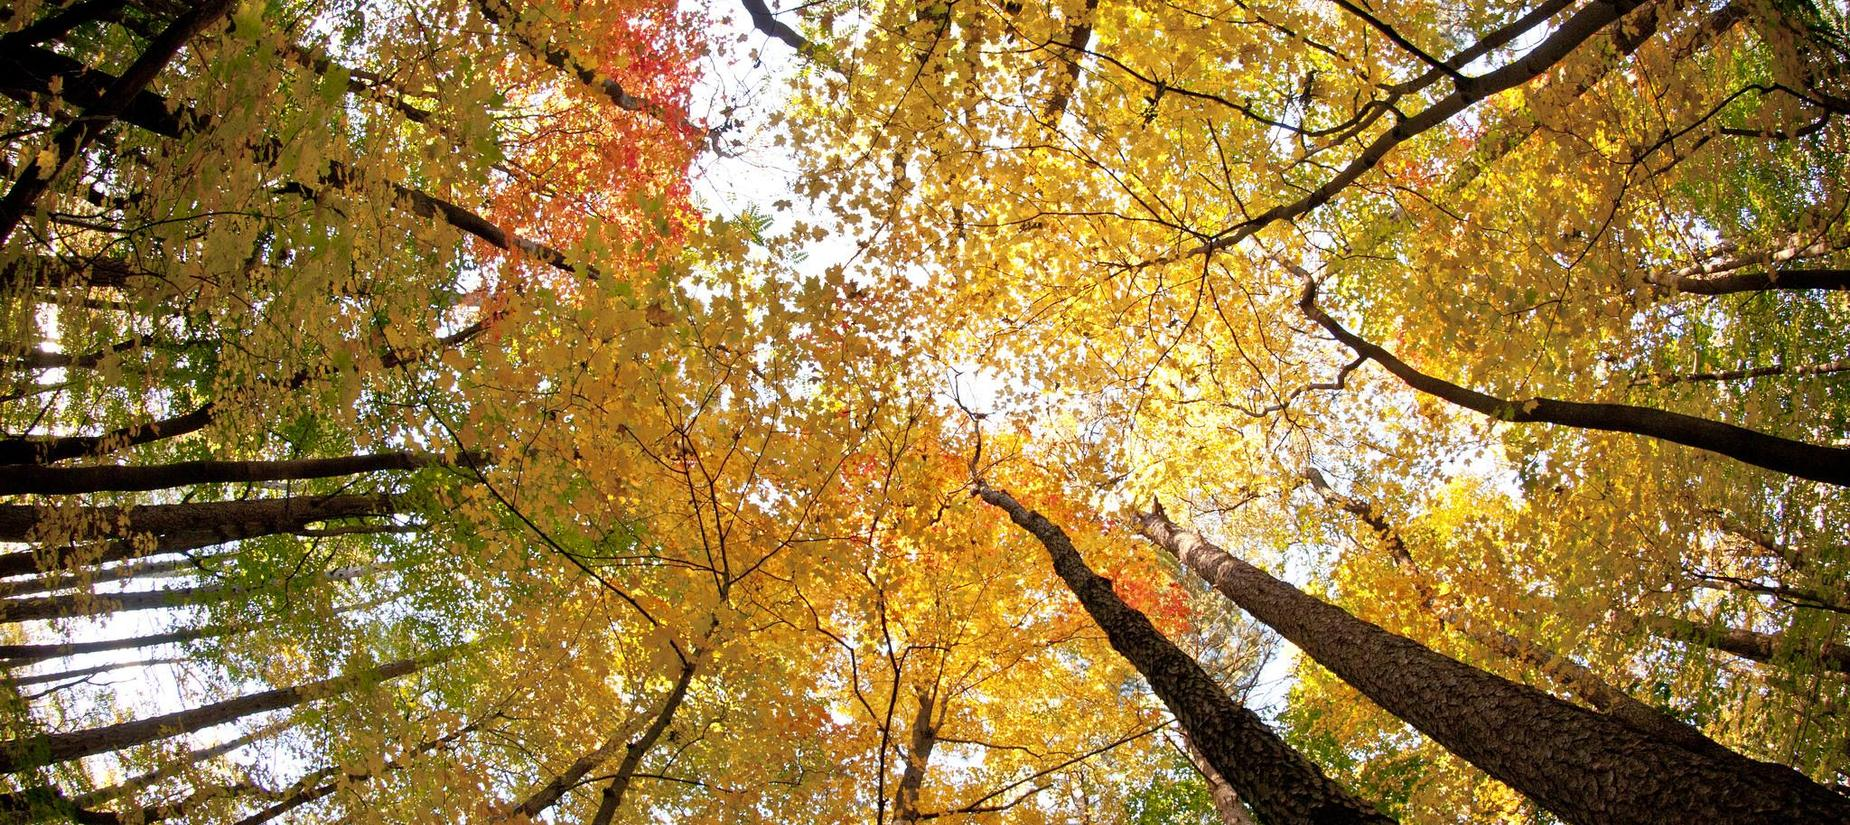 Looking up to the tops of trees with colors of yellow, orange, green and red